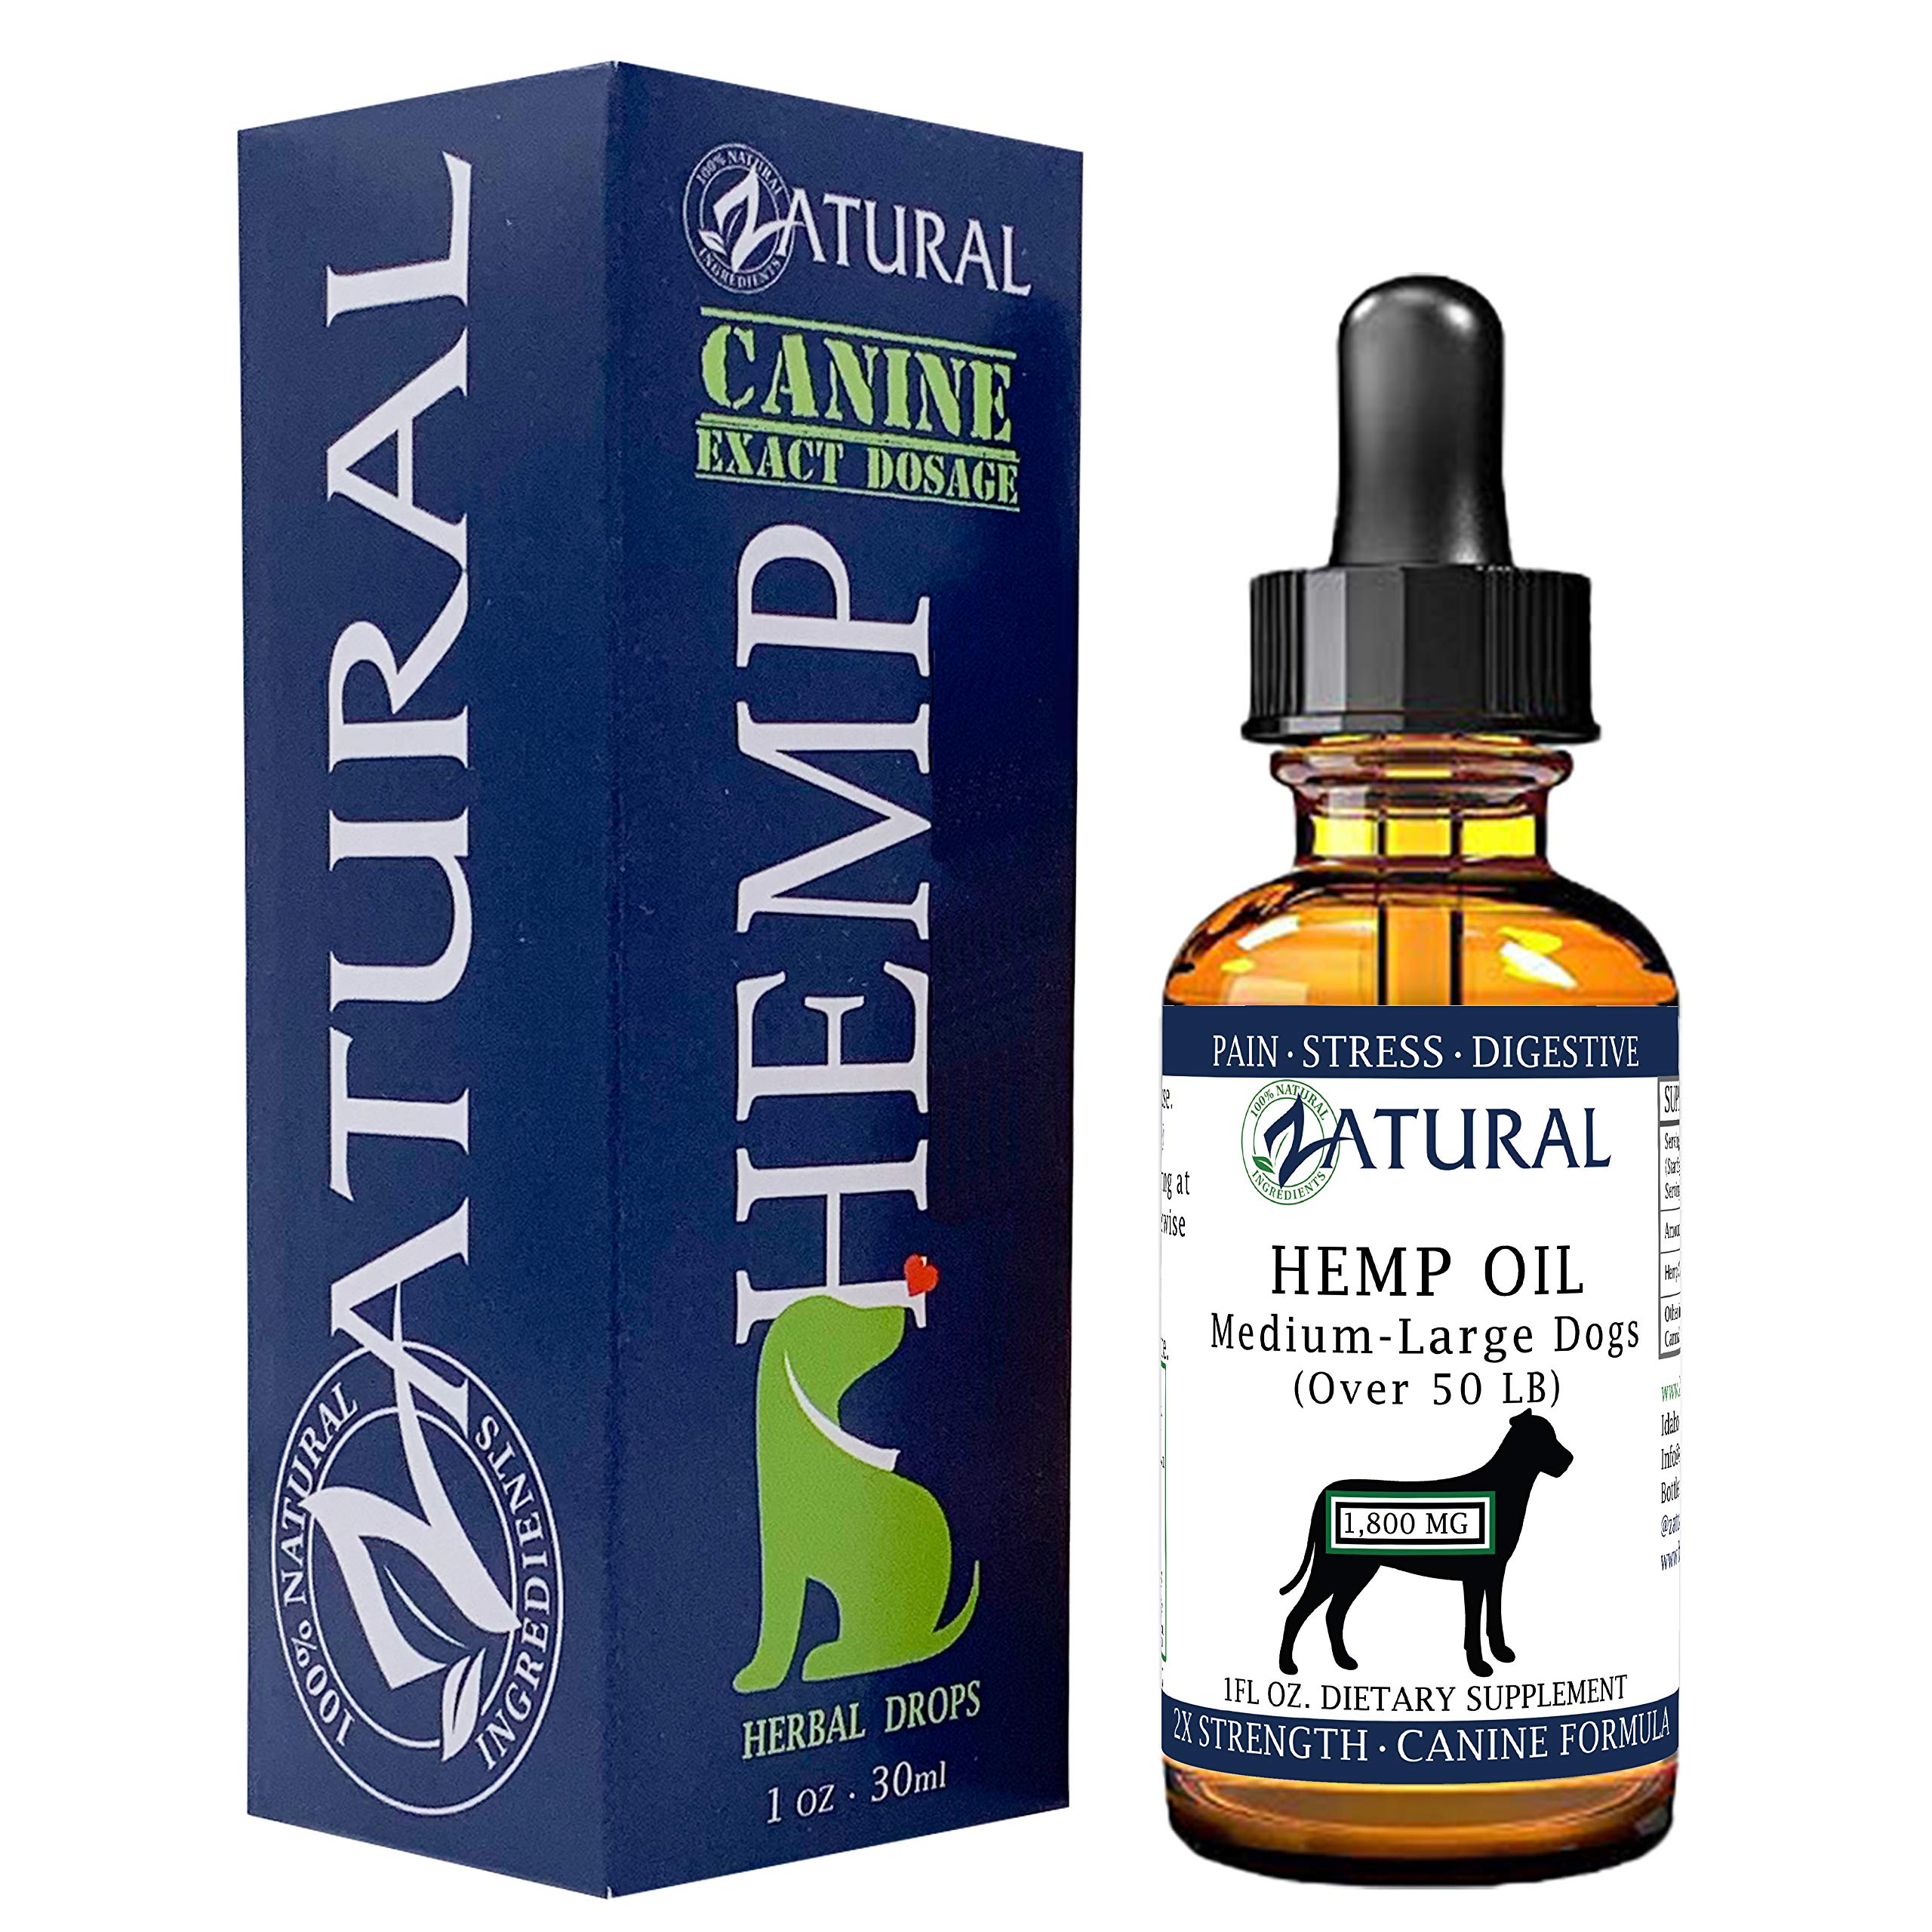 Hemp Oil for Dogs - Hemp Seed Oil - All Natural Support for Joints, Stress, Anxiety, and More (1,800mg) by Zatural